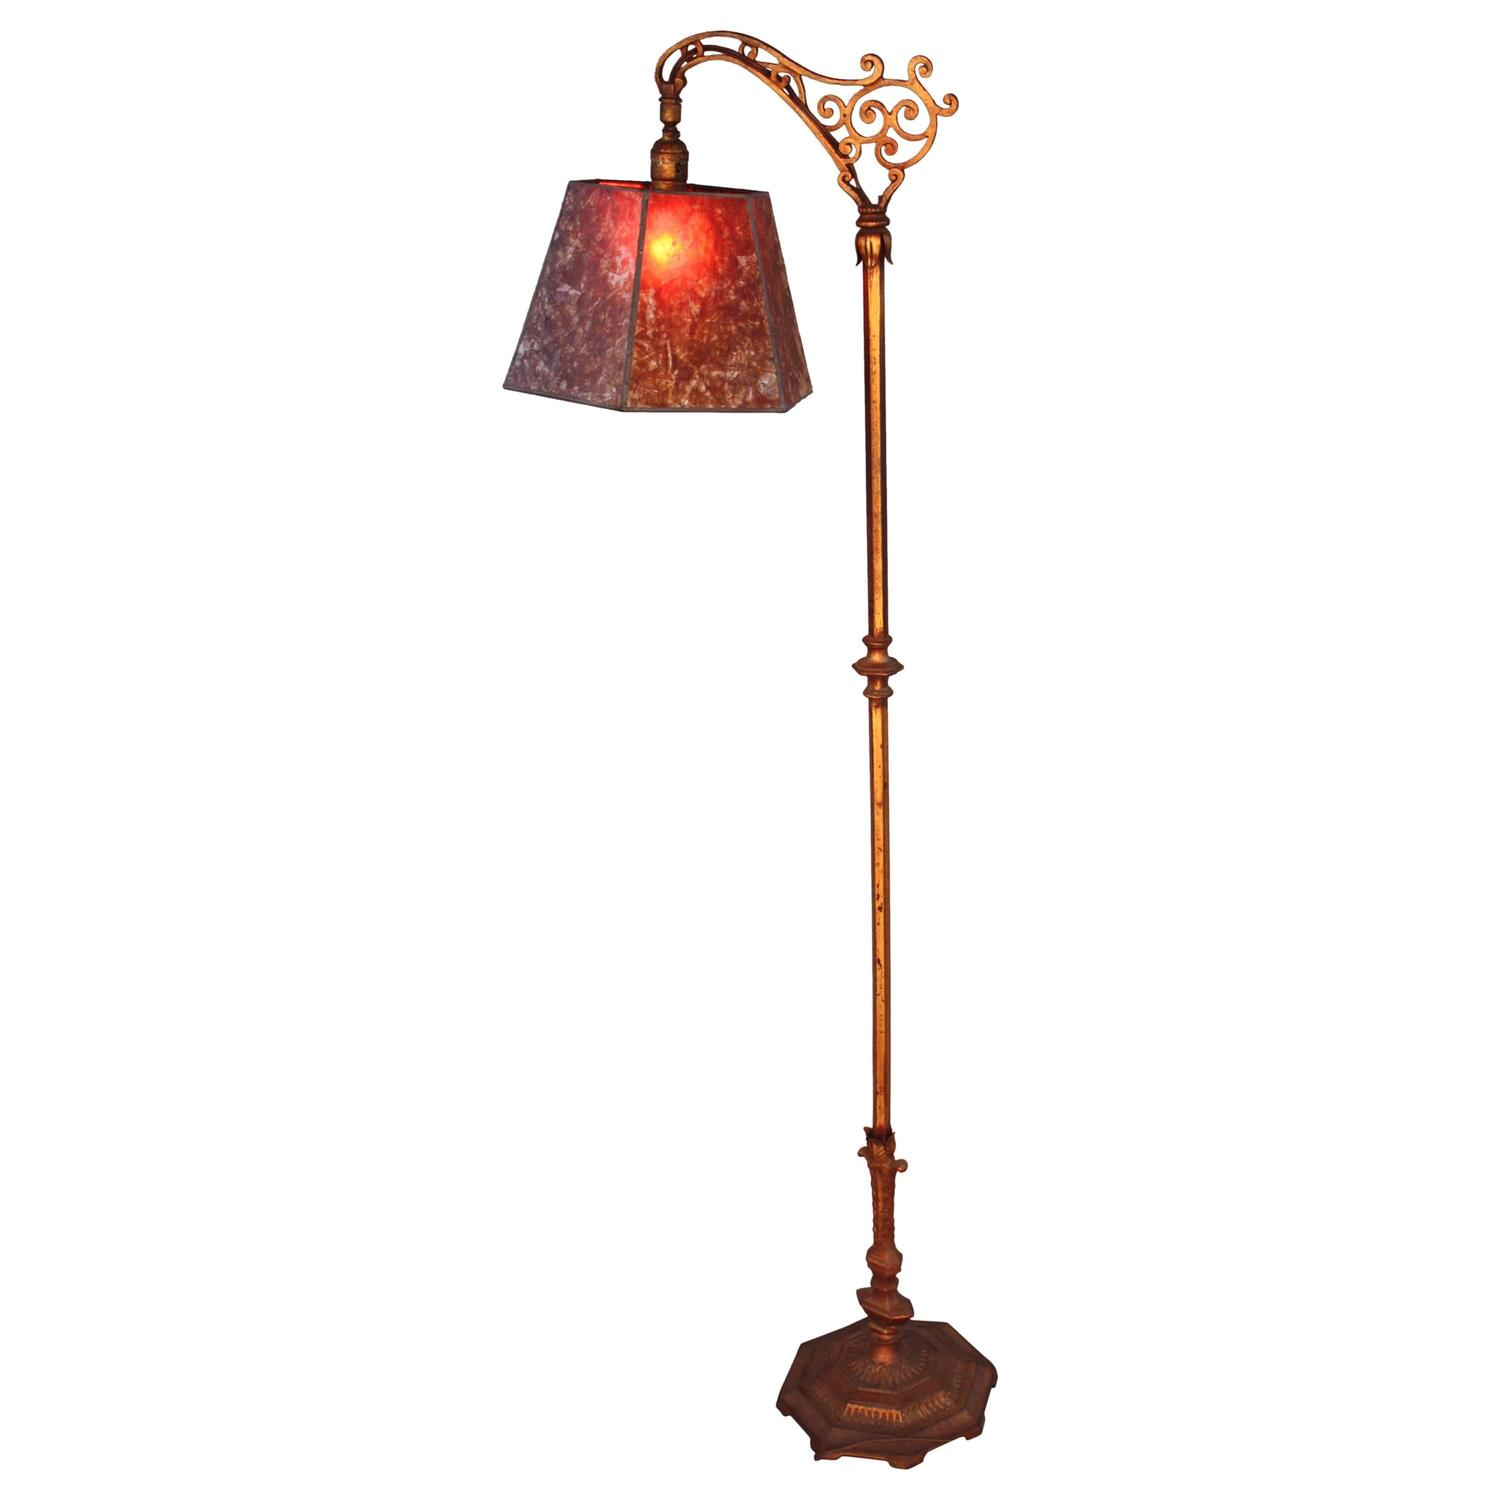 1920s floor lamp with new mica shade for sale at 1stdibs for 1920 floor lamp